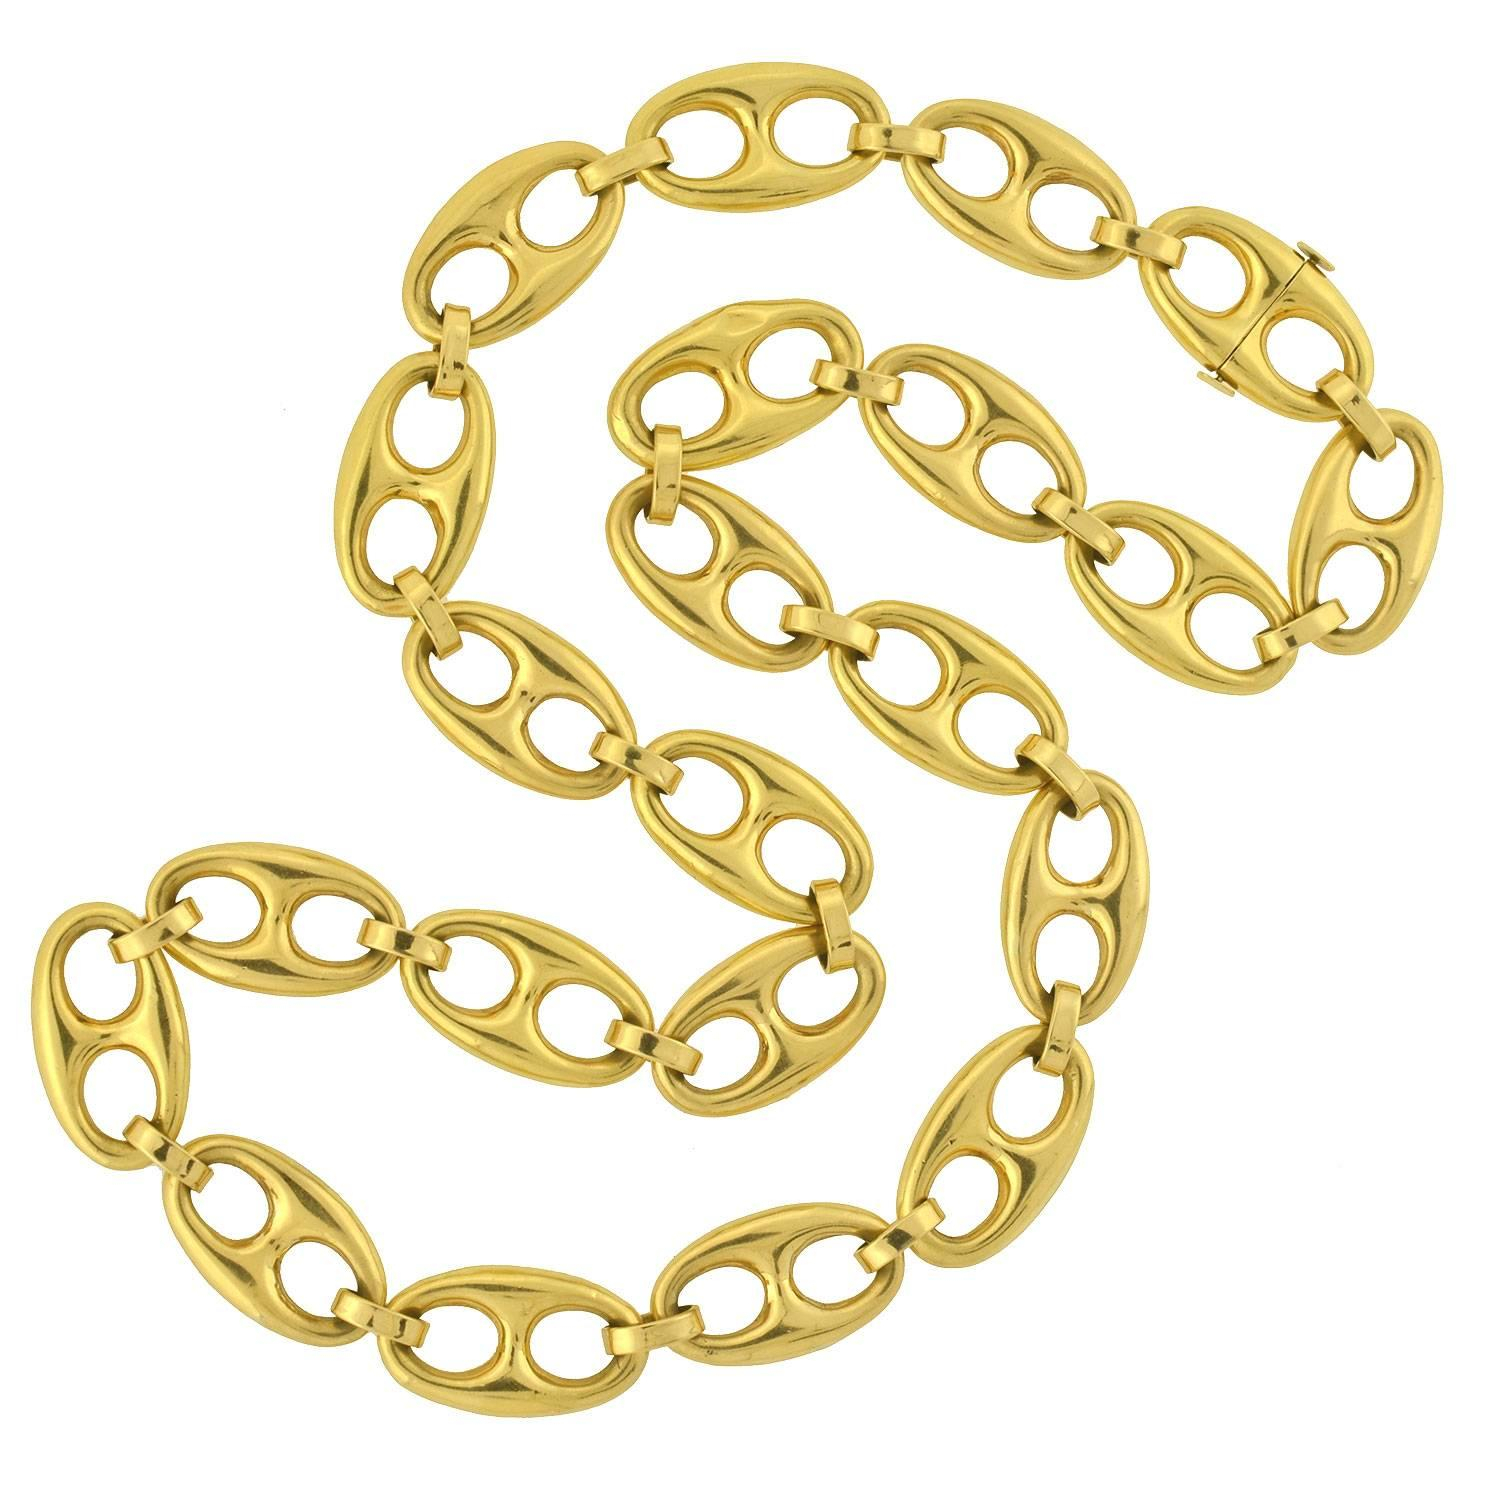 Contemporary Anchor Link Gold Chain Necklace In Most Popular Classic Anchor Chain Necklaces (View 17 of 25)